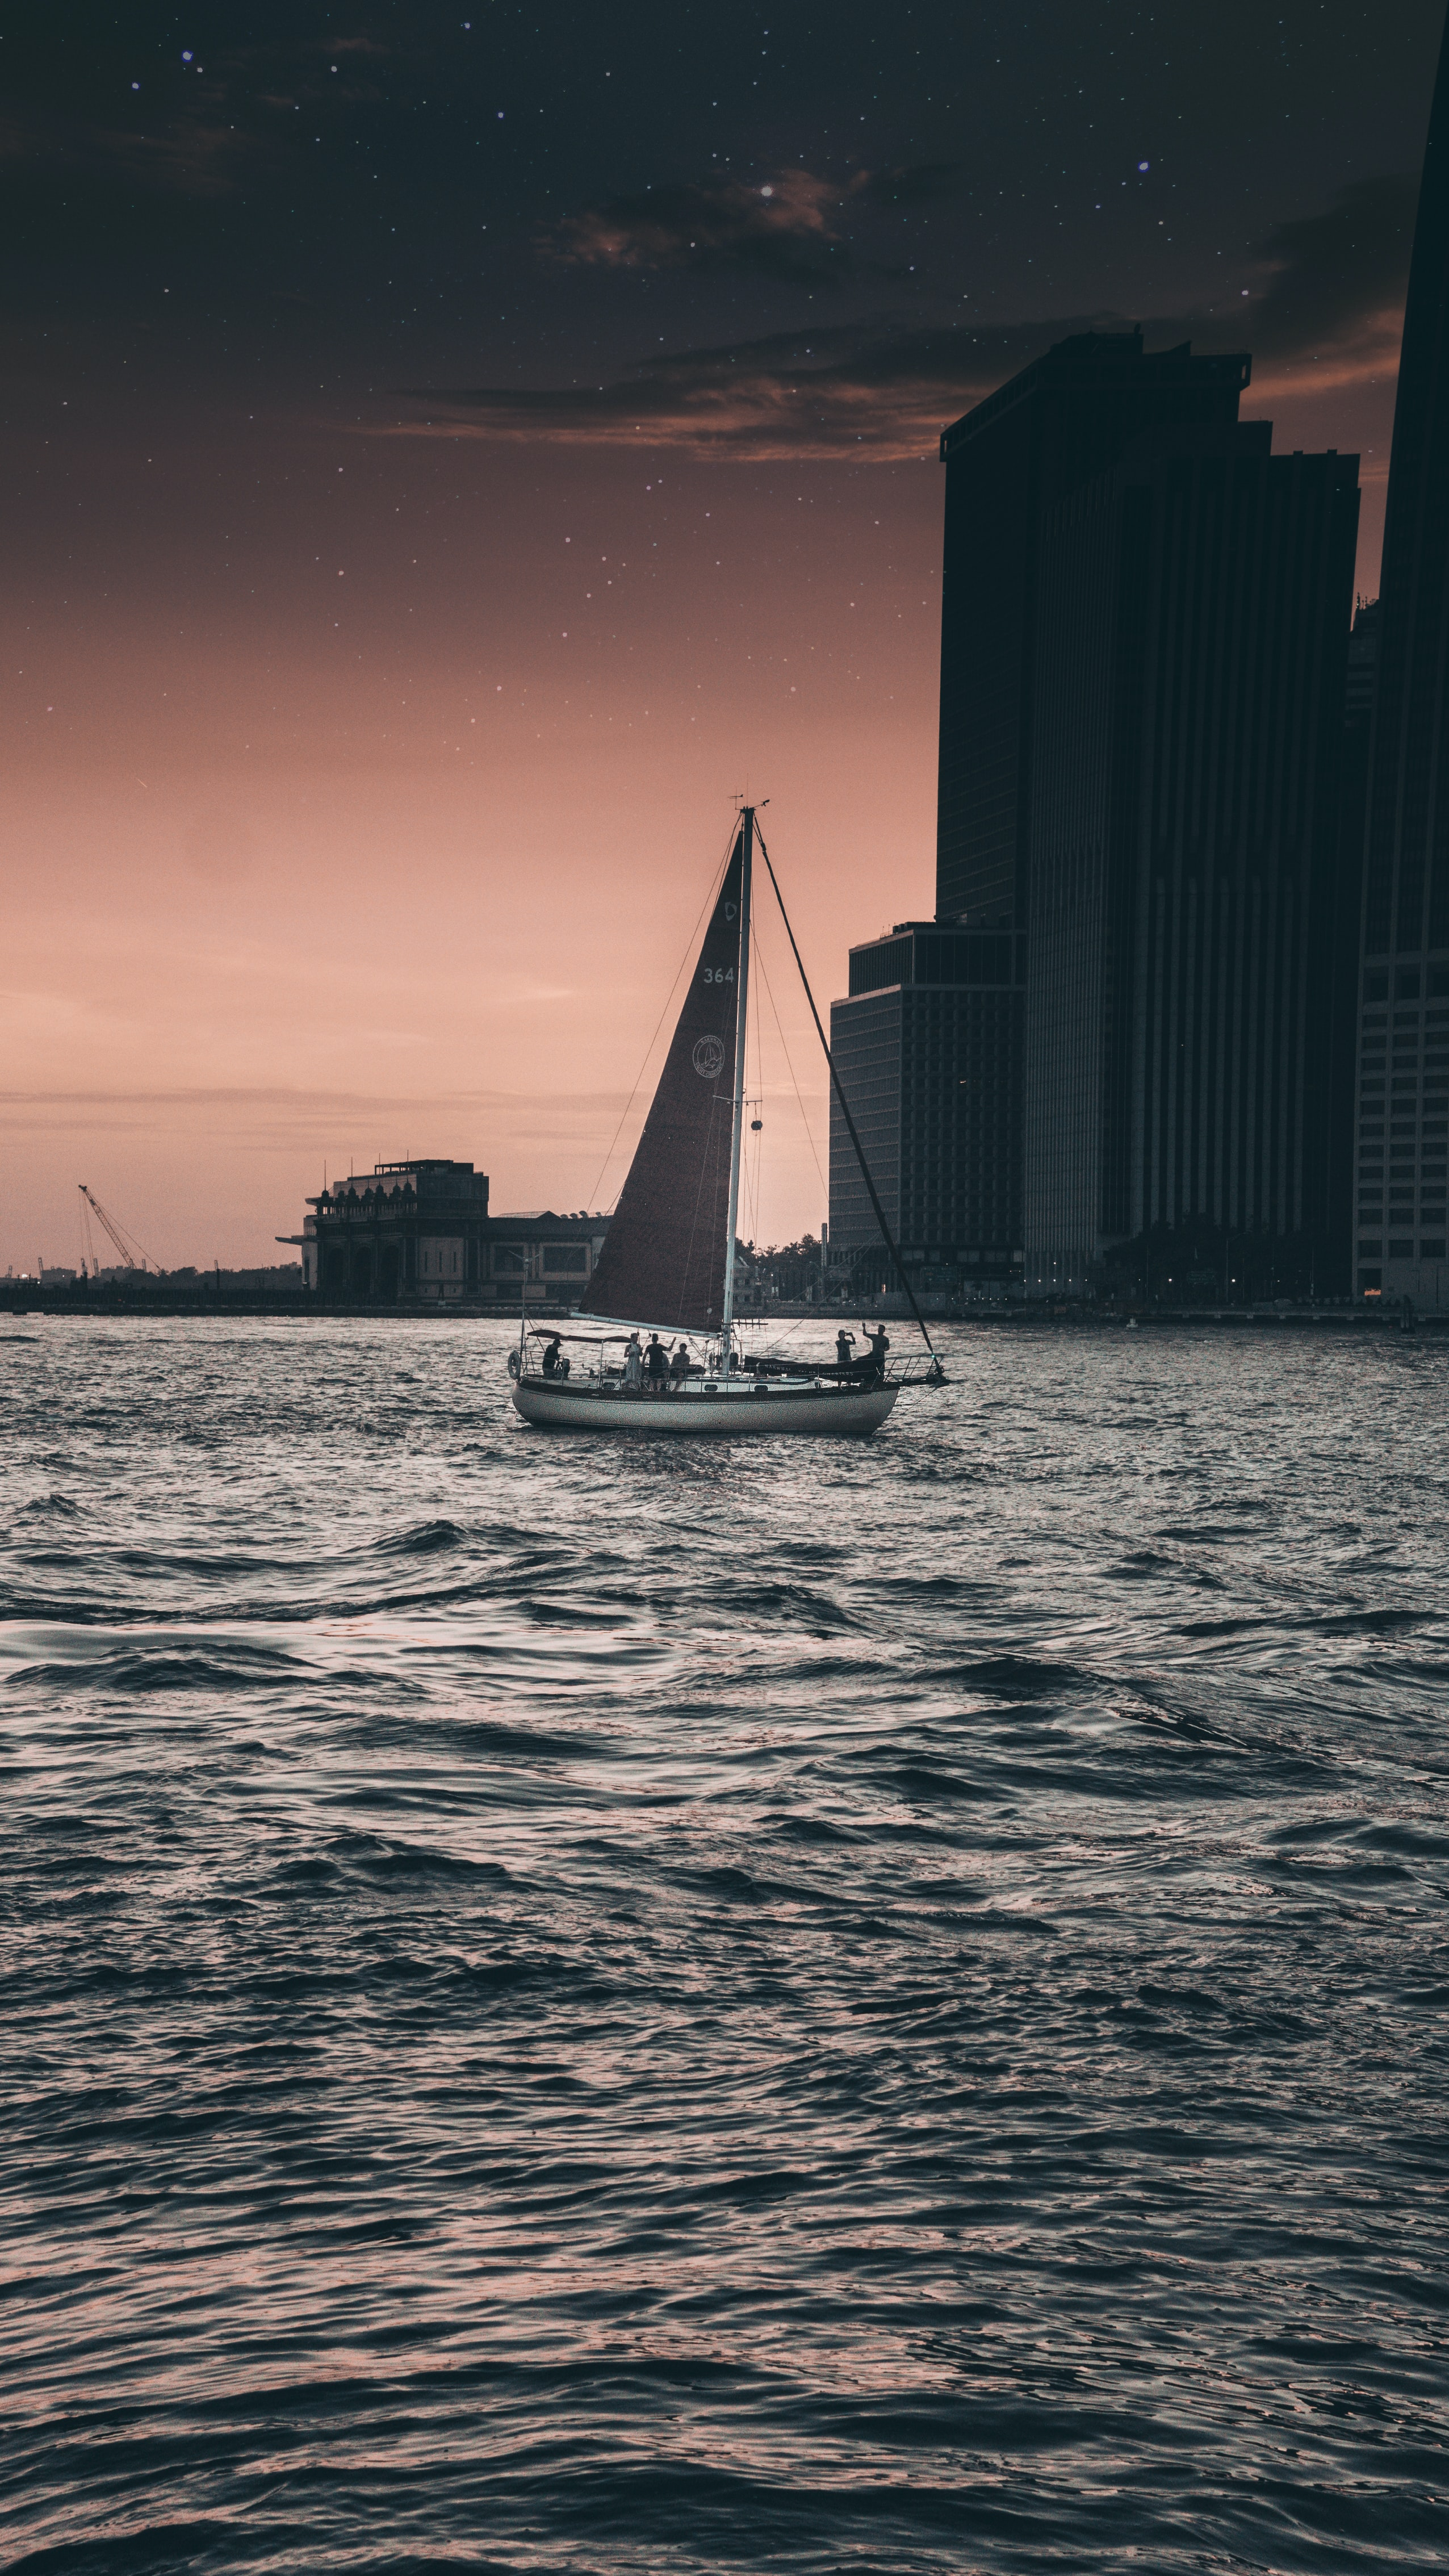 black and gray sailboat on body of water